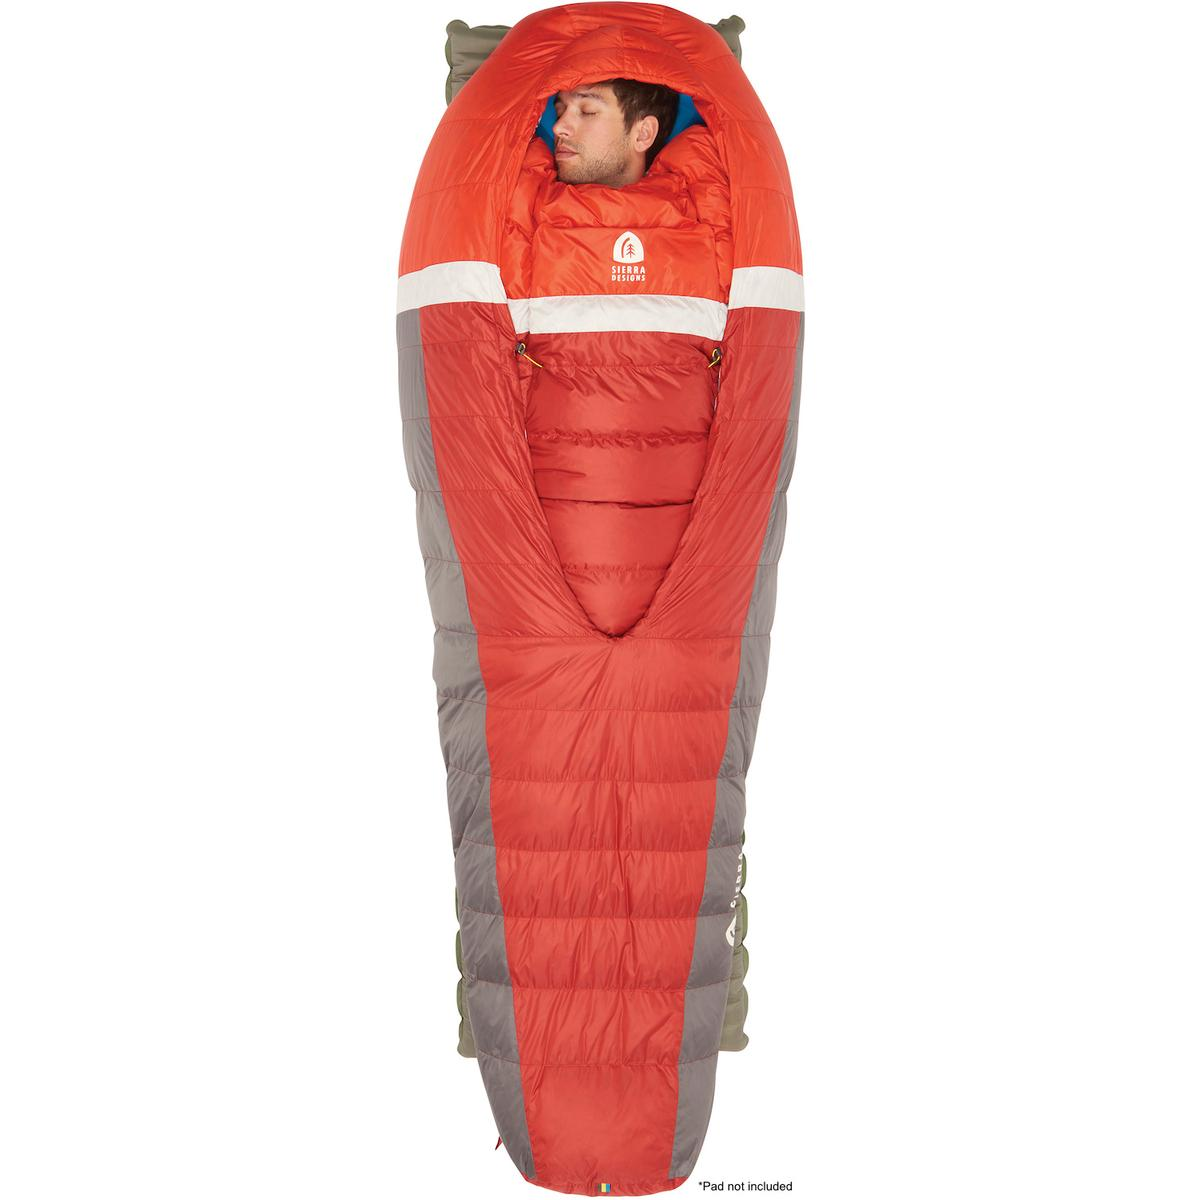 Sierra Designs Backcountry Bed 700 20 Degrees Men's Sleeping Bag